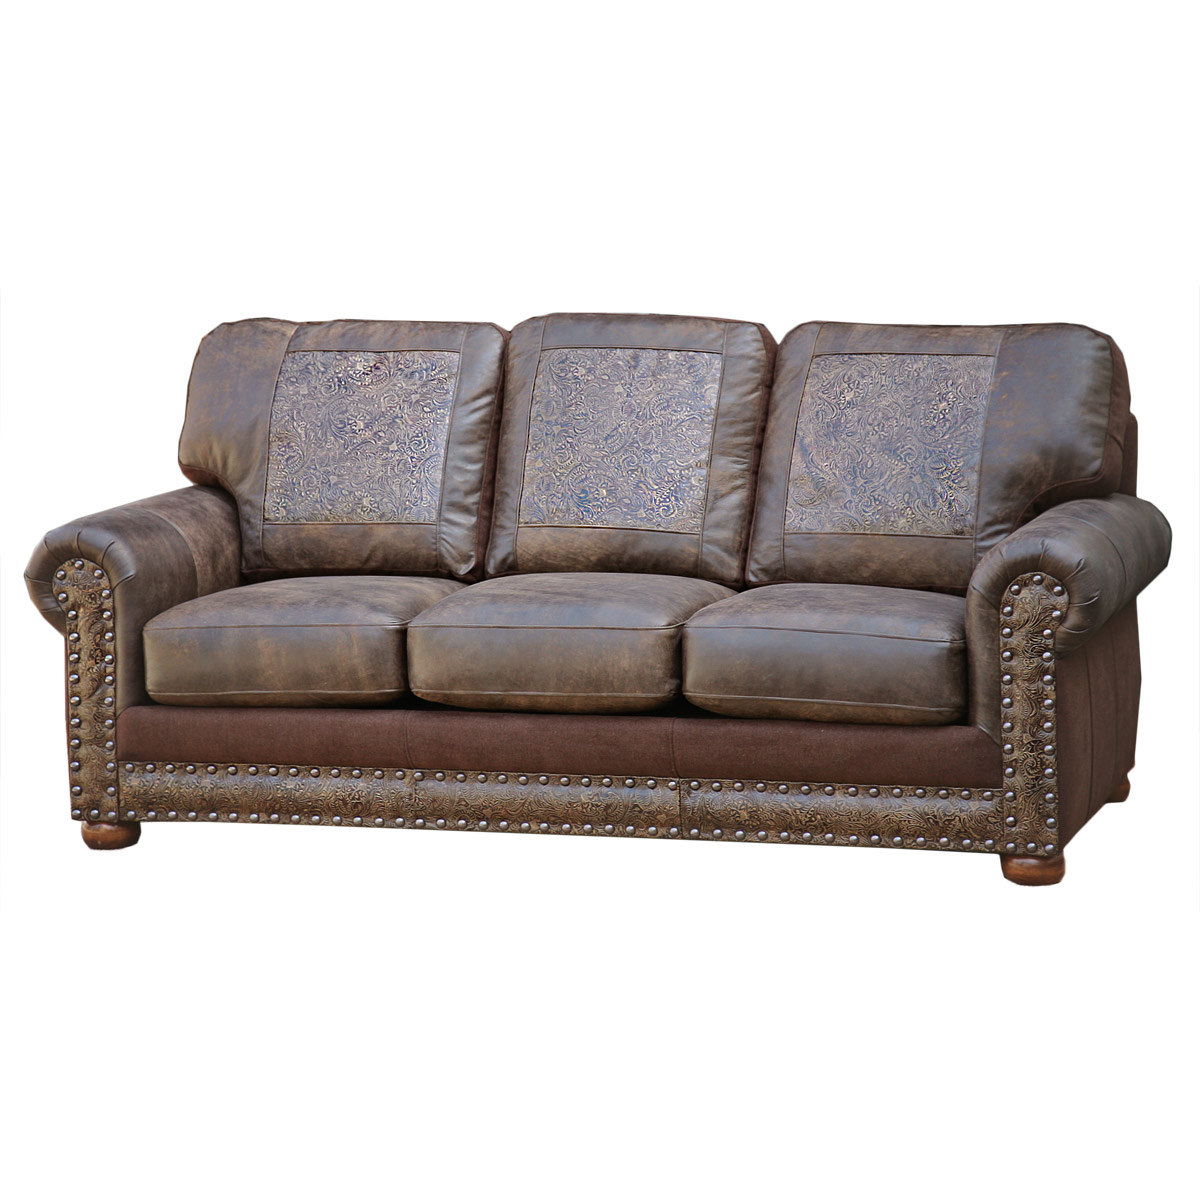 Attirant Rancher Stallone Timber Sofa